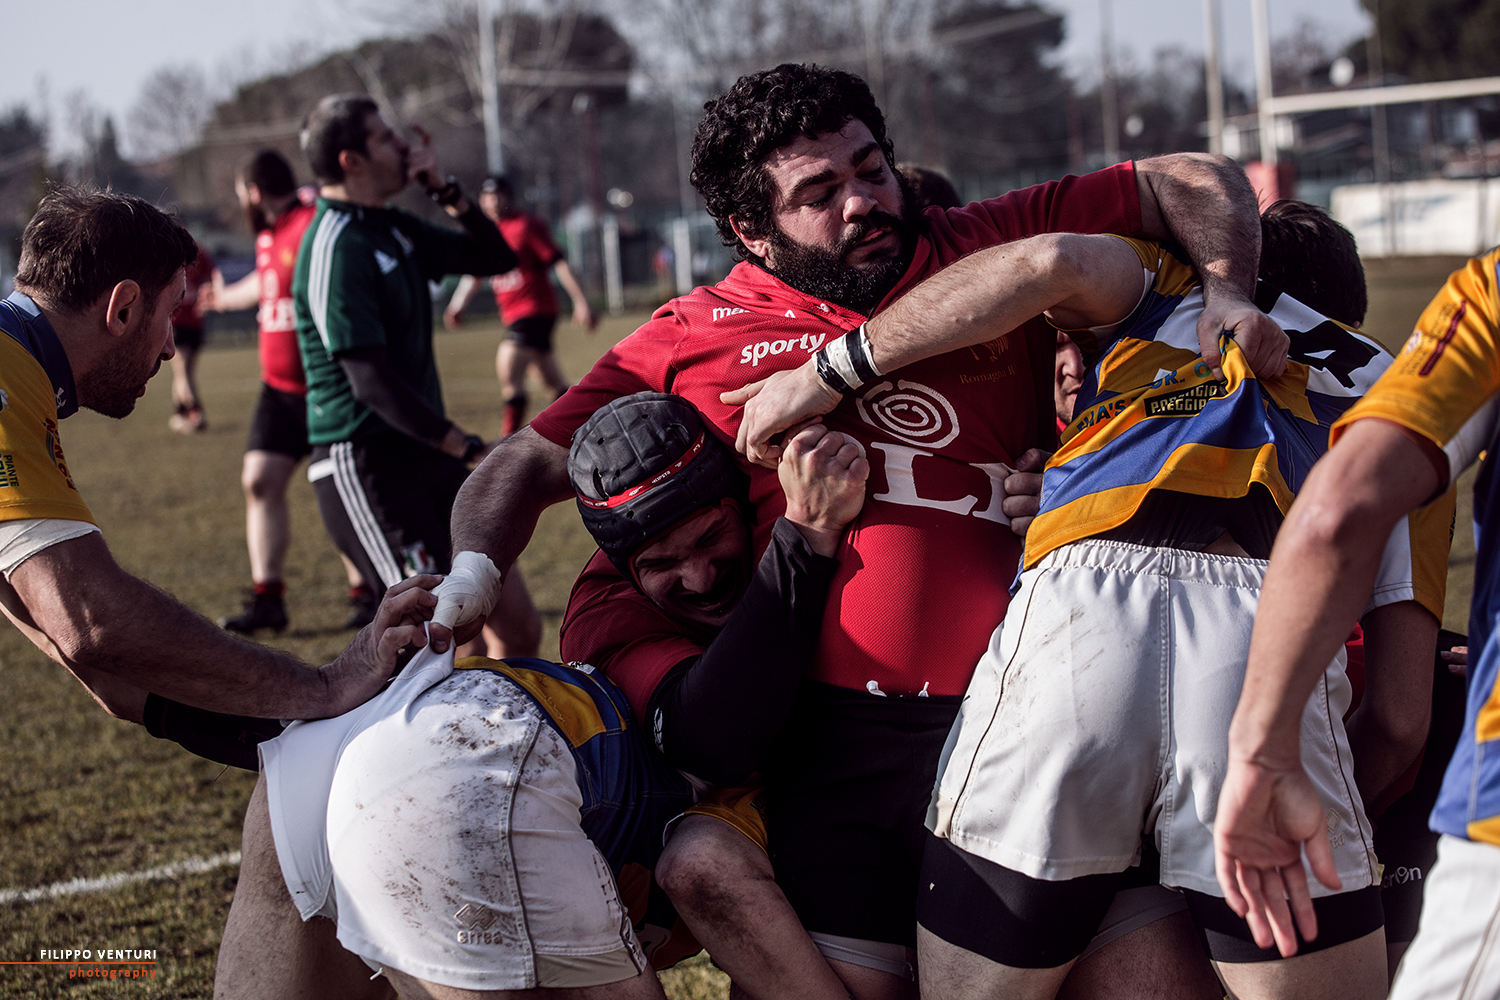 romagna_rugby_parma_03.jpg